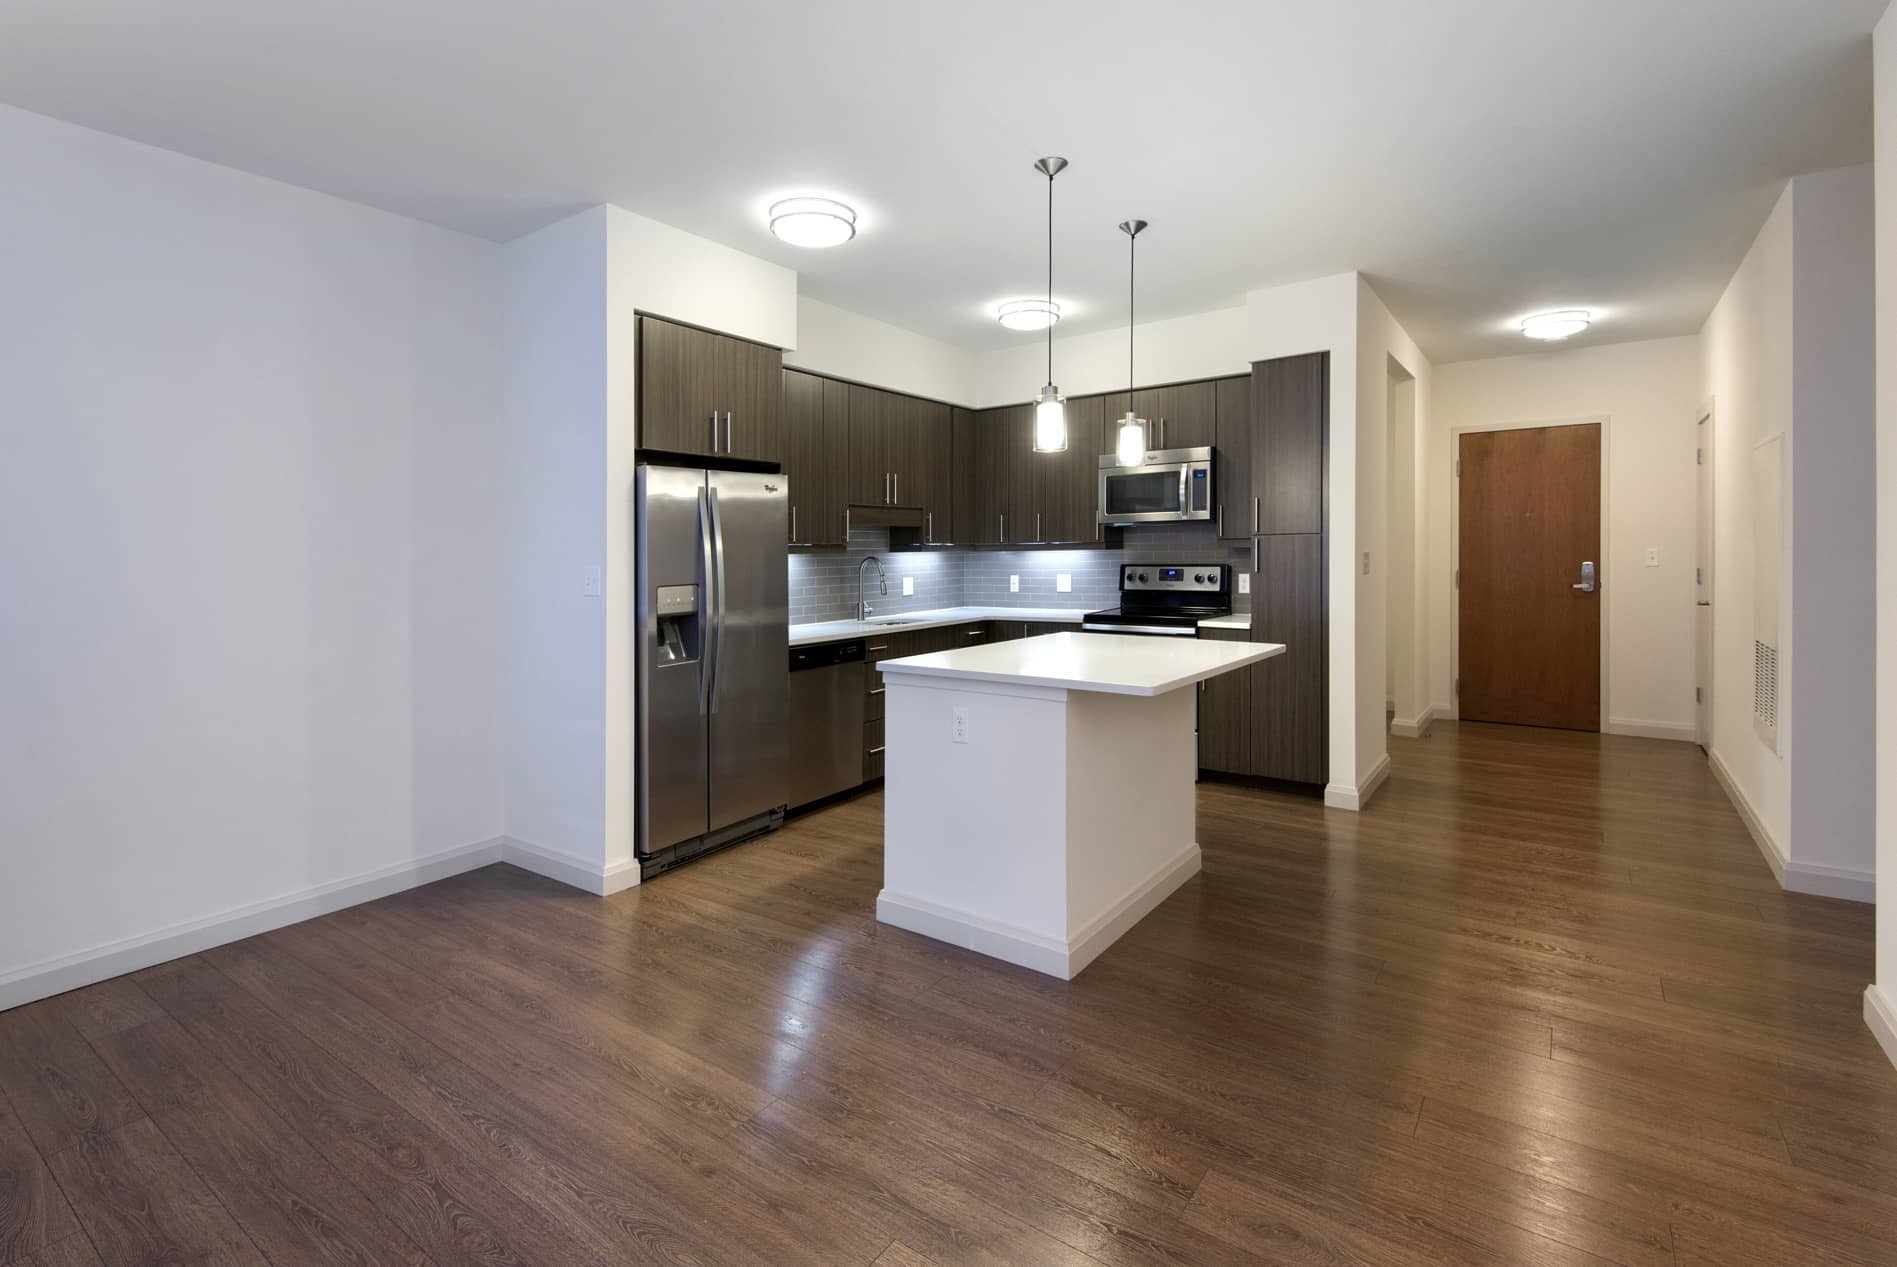 1 Bed, 1 Bath apartment in Waltham for $2,669